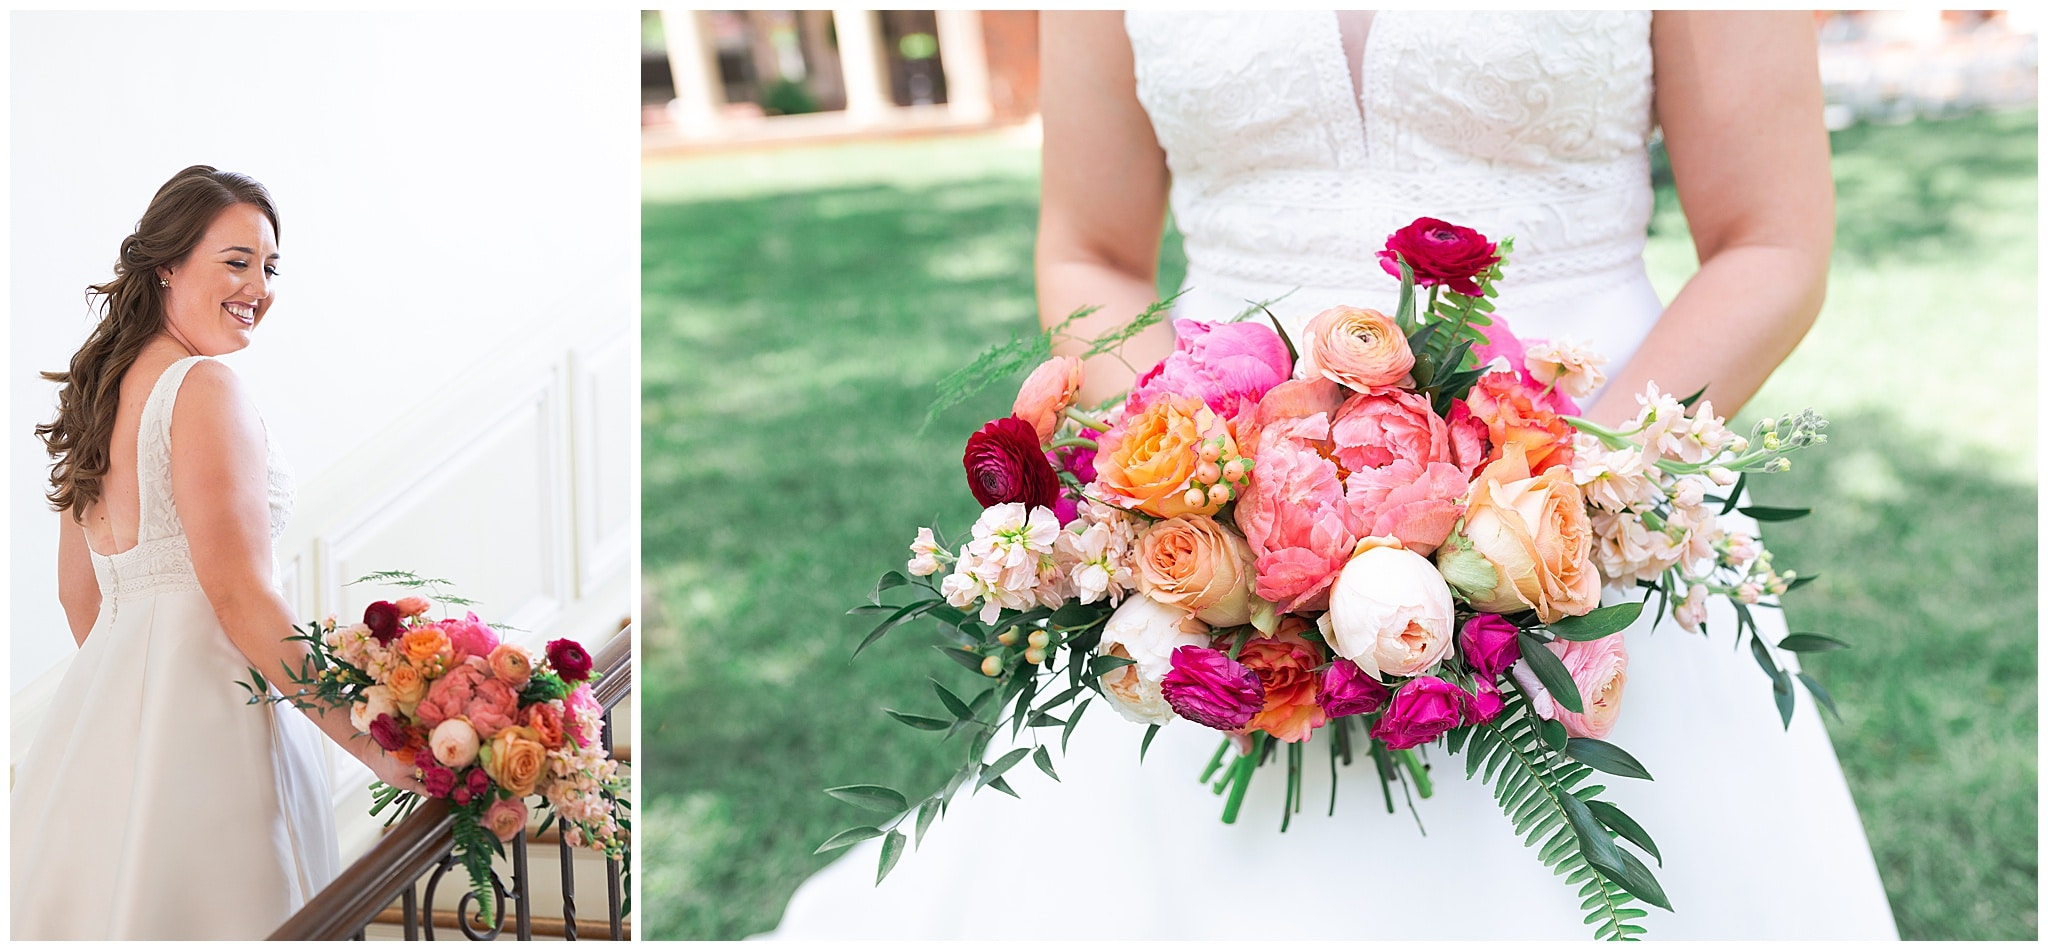 bridal portraits at Astin Mansion in Bryan Texas by Swish and Click Photography